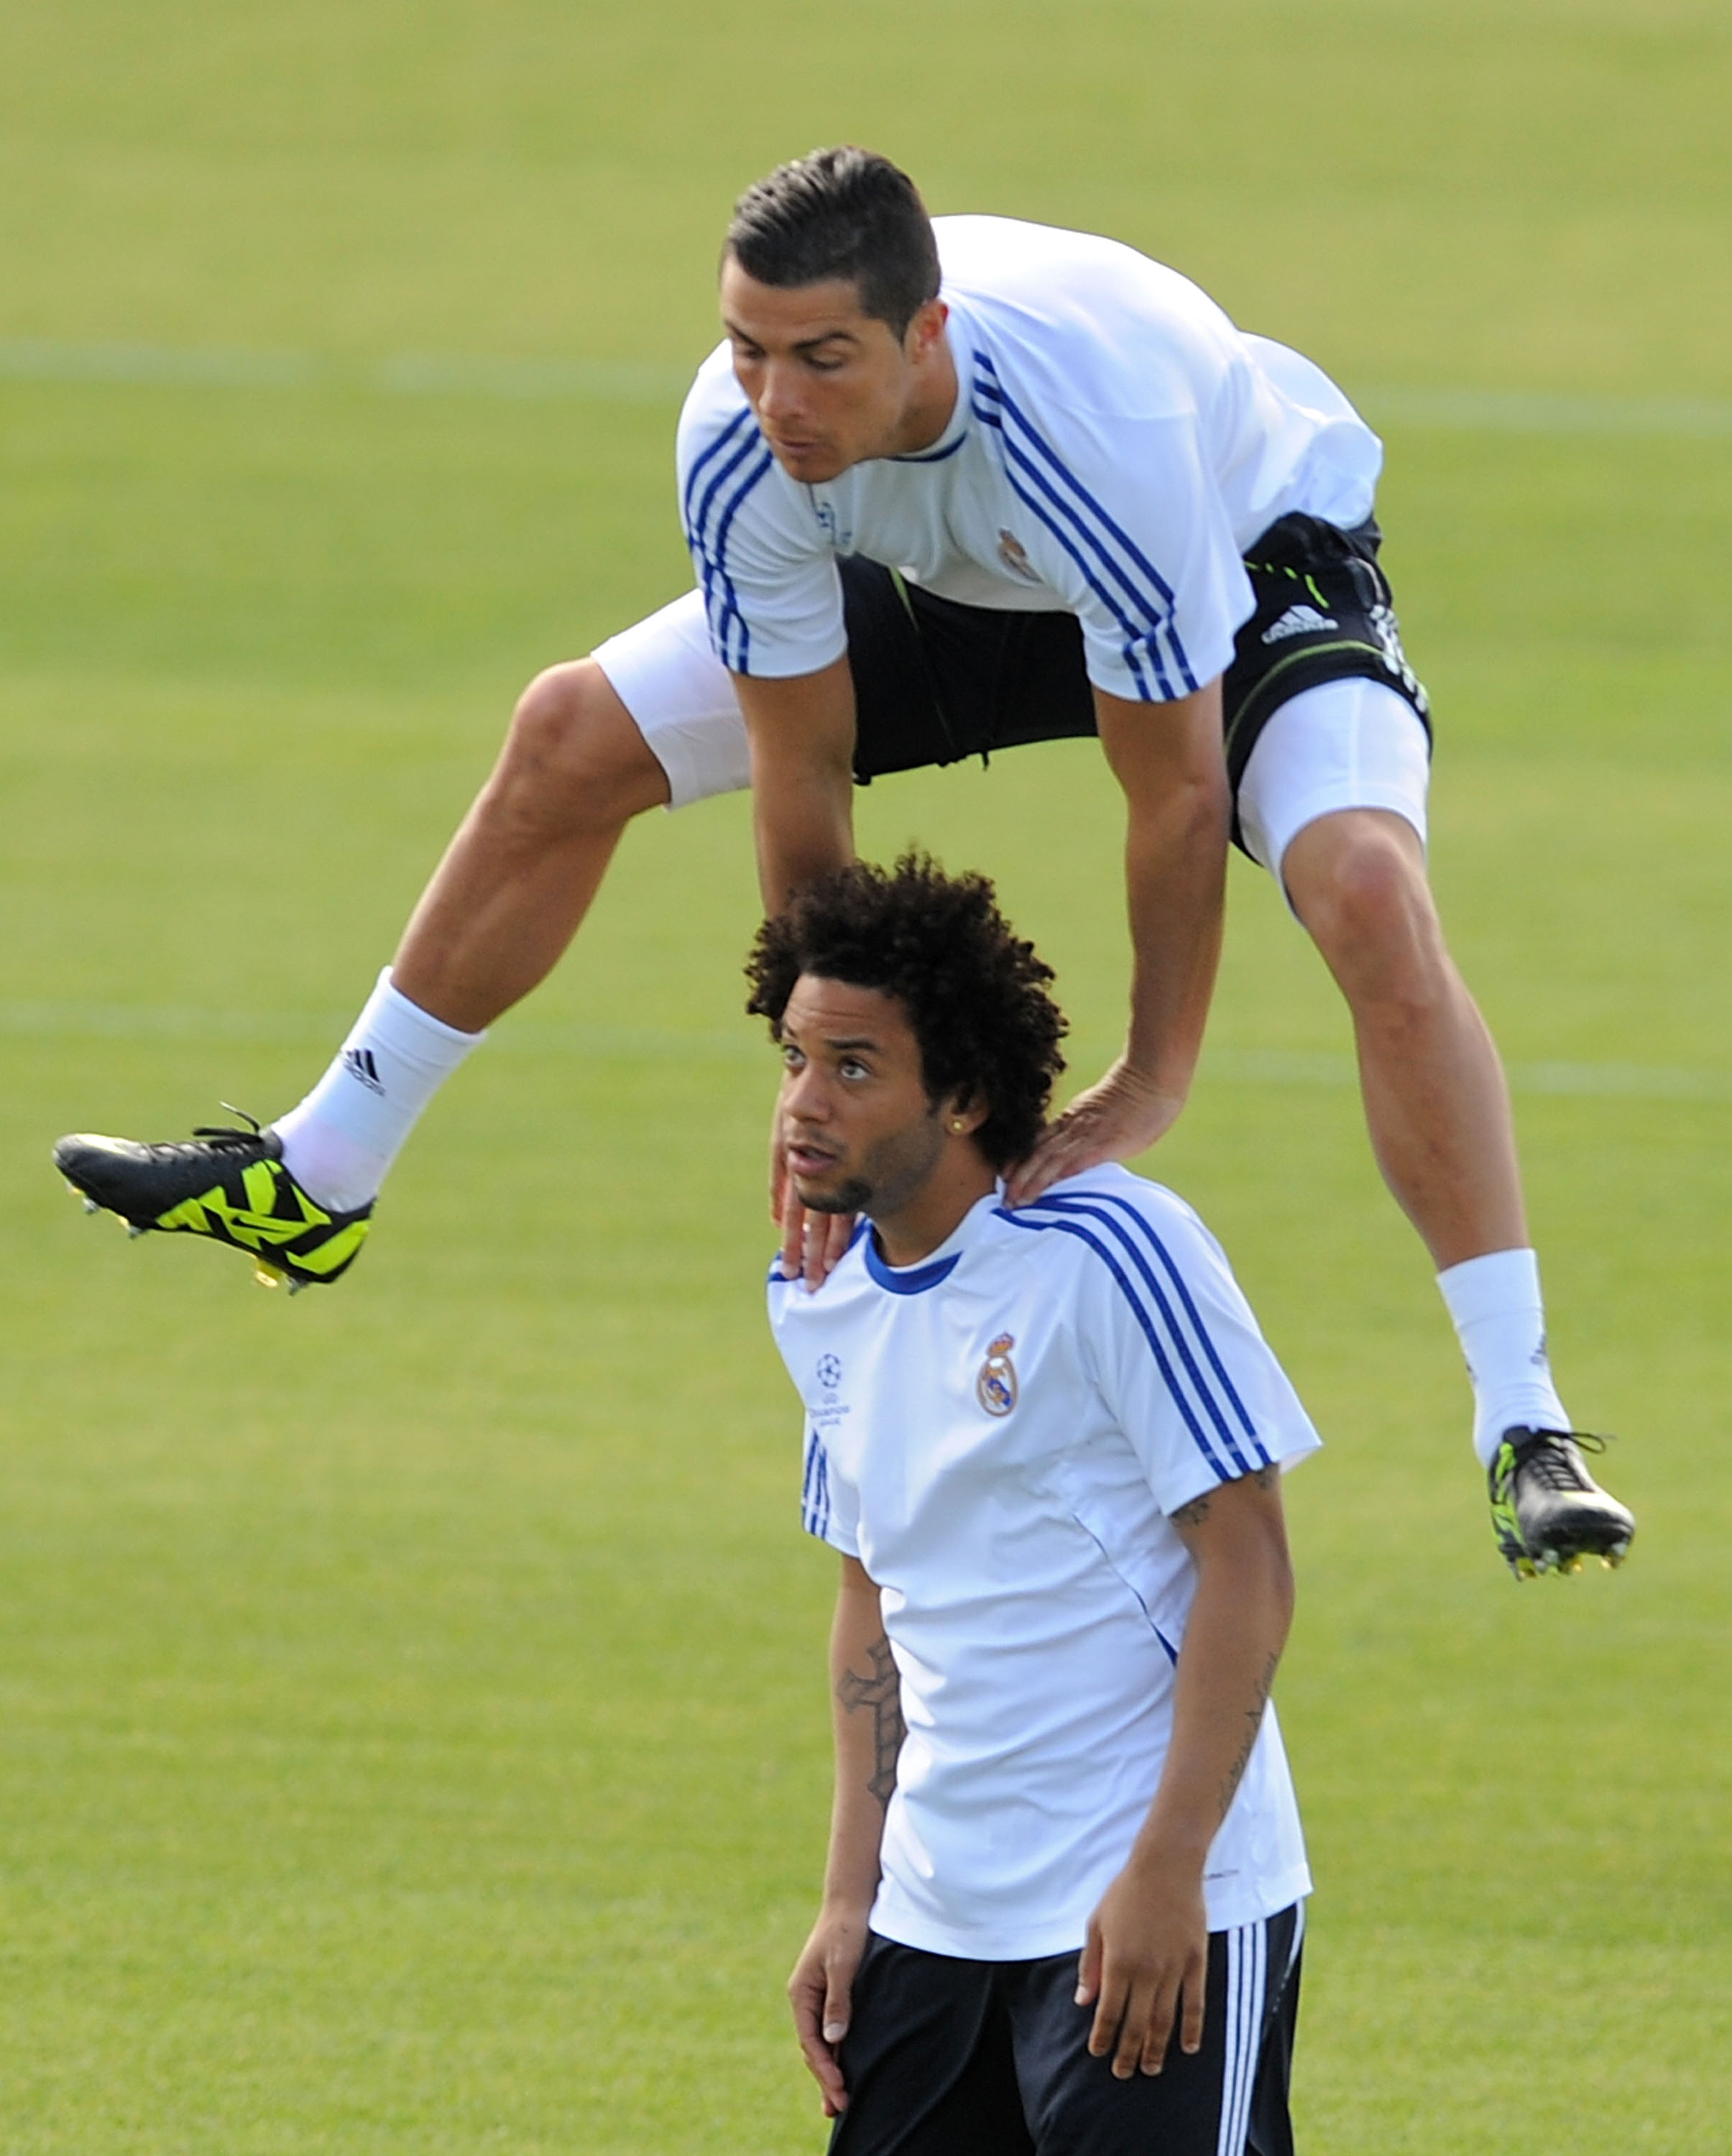 MADRID, SPAIN - APRIL 26:  Cristiano Ronaldo of Real Madrid jumps over Marcelo during a training session at Valdebebas training ground ahead of their UEFA Champions League semi-final first leg match against Barcelona on April 26, 2011 in Madrid, Spain  (P